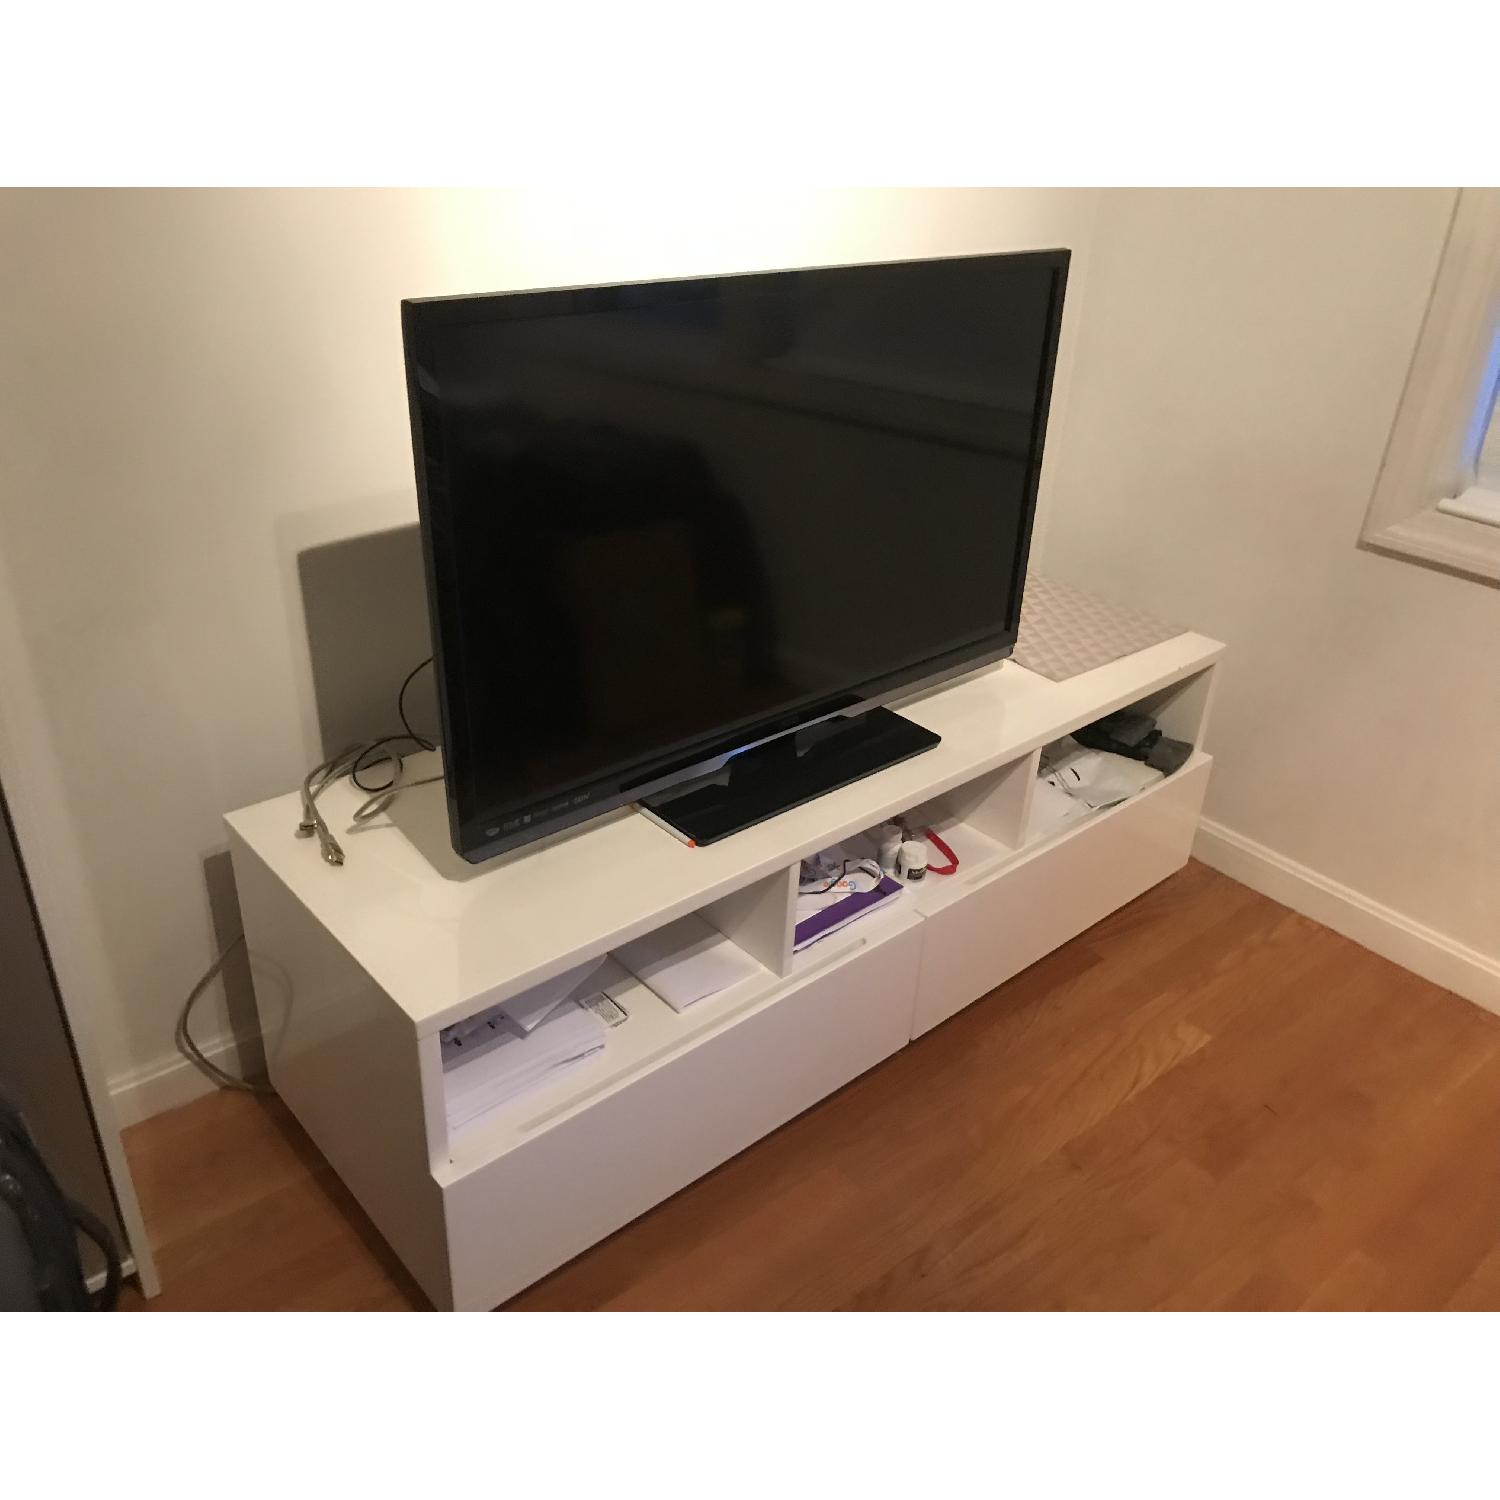 CB2 High Gloss White Modern TV Stand w/ 2 Drawers - image-1